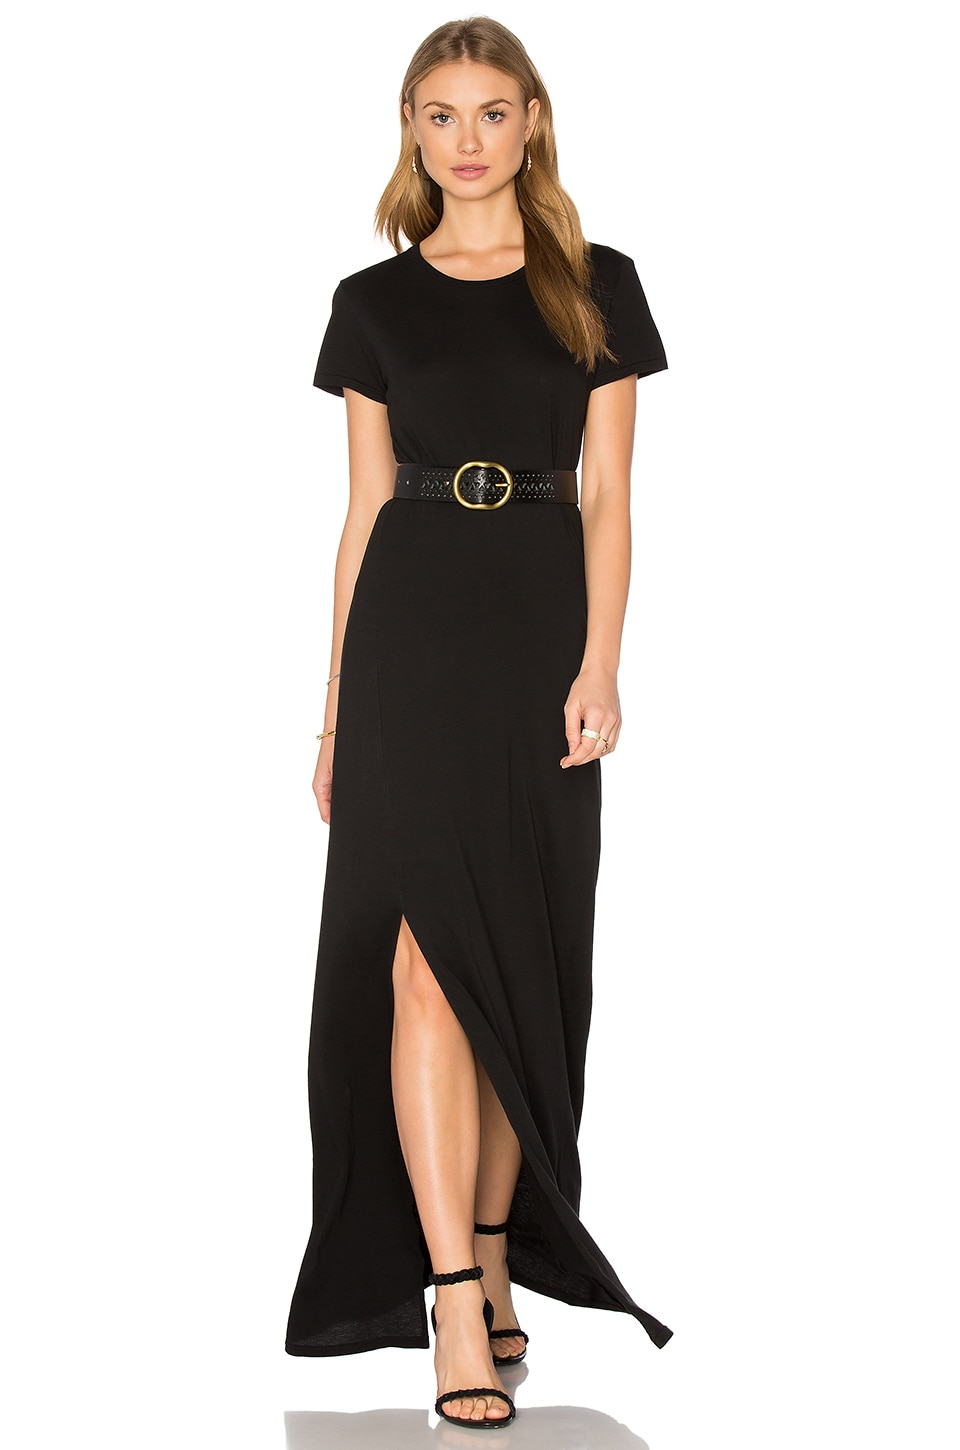 AG Adriano Goldschmied Lutz Dress in True Black